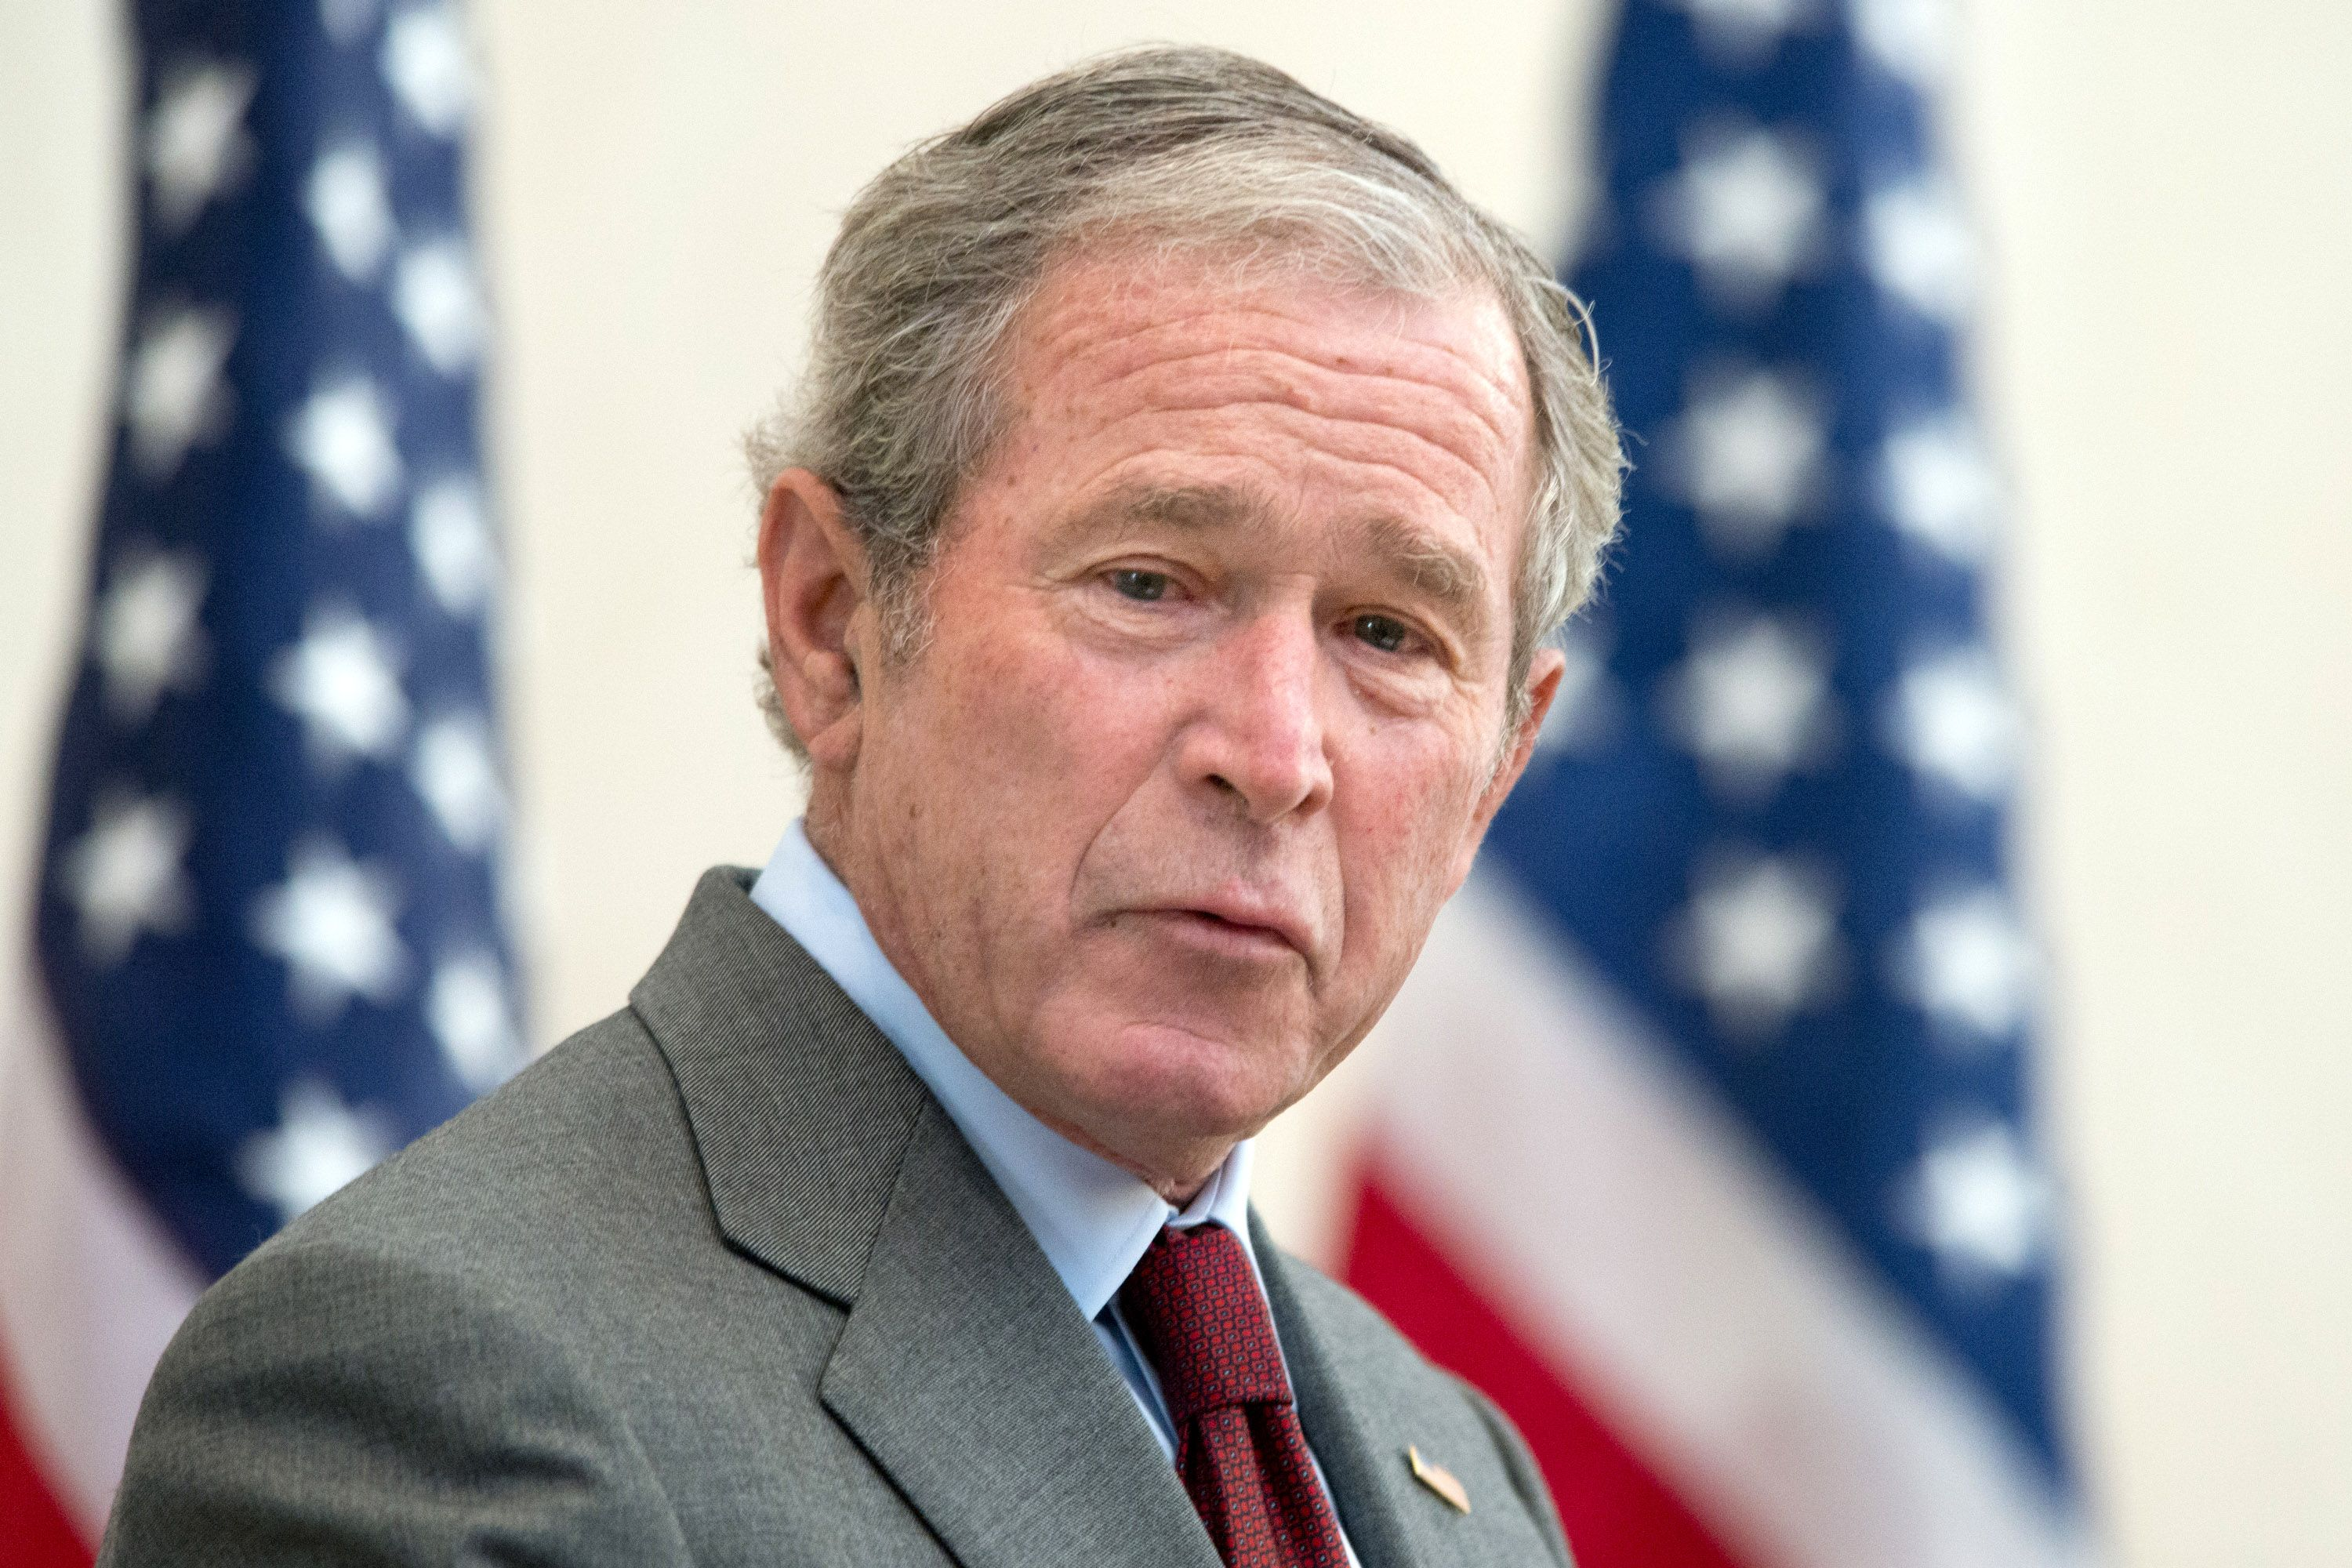 George W Bush Brings Pizza To Employees Who Are Working Hard For